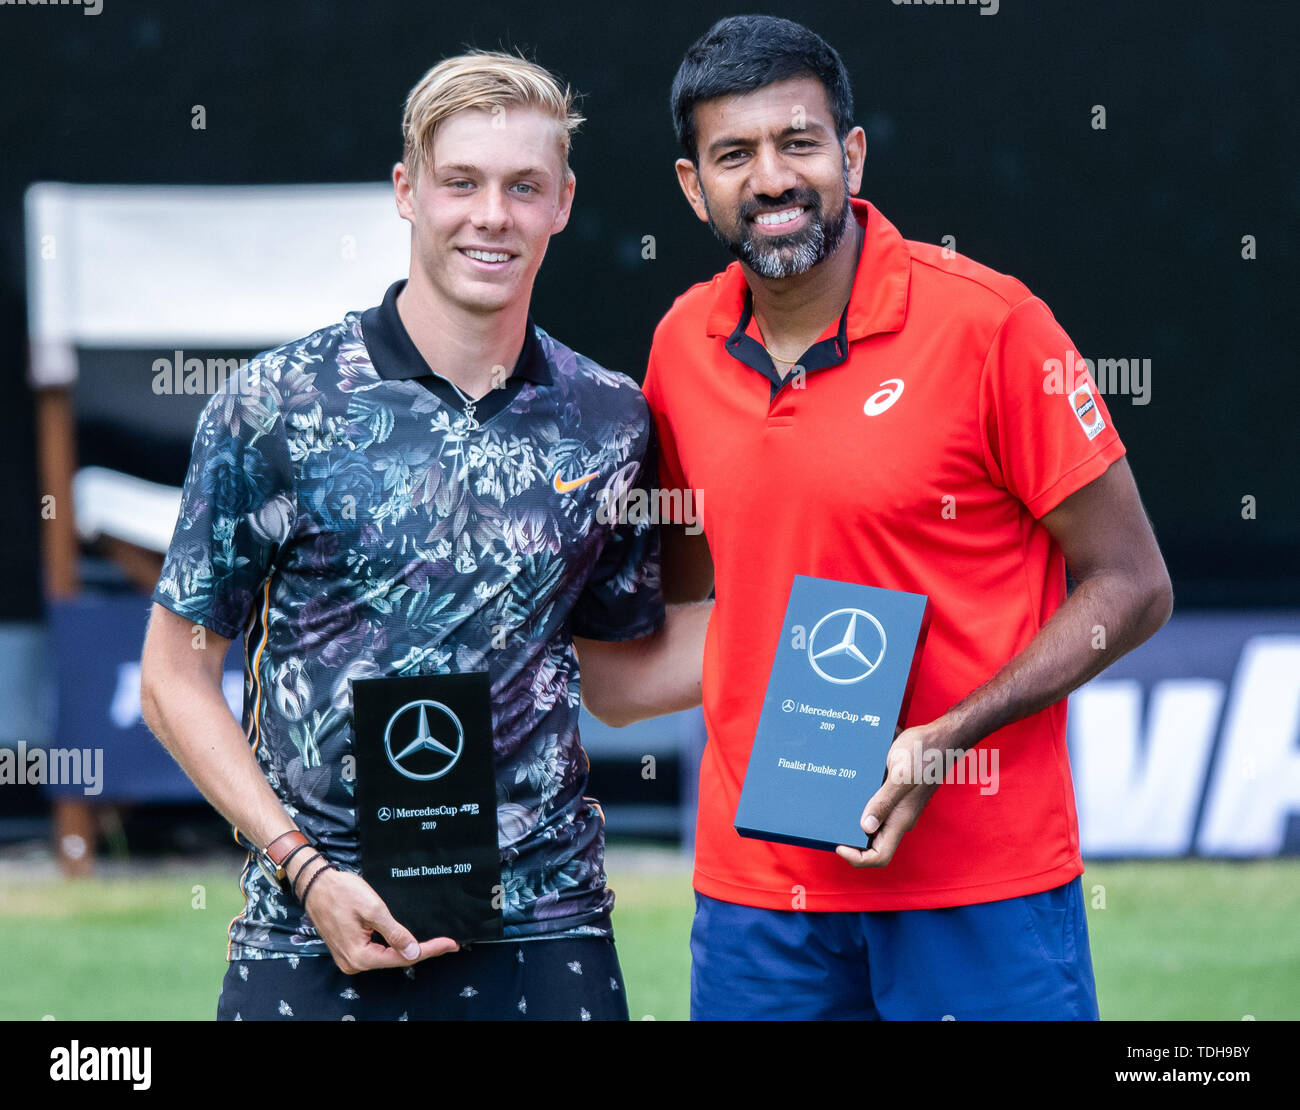 Stuttgart, Germany. 16th June, 2019. Tennis: ATP-Tour - Stuttgart, doubles, men, final: Peers (Australia) and Soares (Brazil) - Bopanna (India) and Shapovalov (Canada). Denis Shapovalov (l) and Rohan Bopanna stand at the award ceremony with the trophy for the runners-up. Credit: Silas Stein/dpa/Alamy Live News - Stock Image